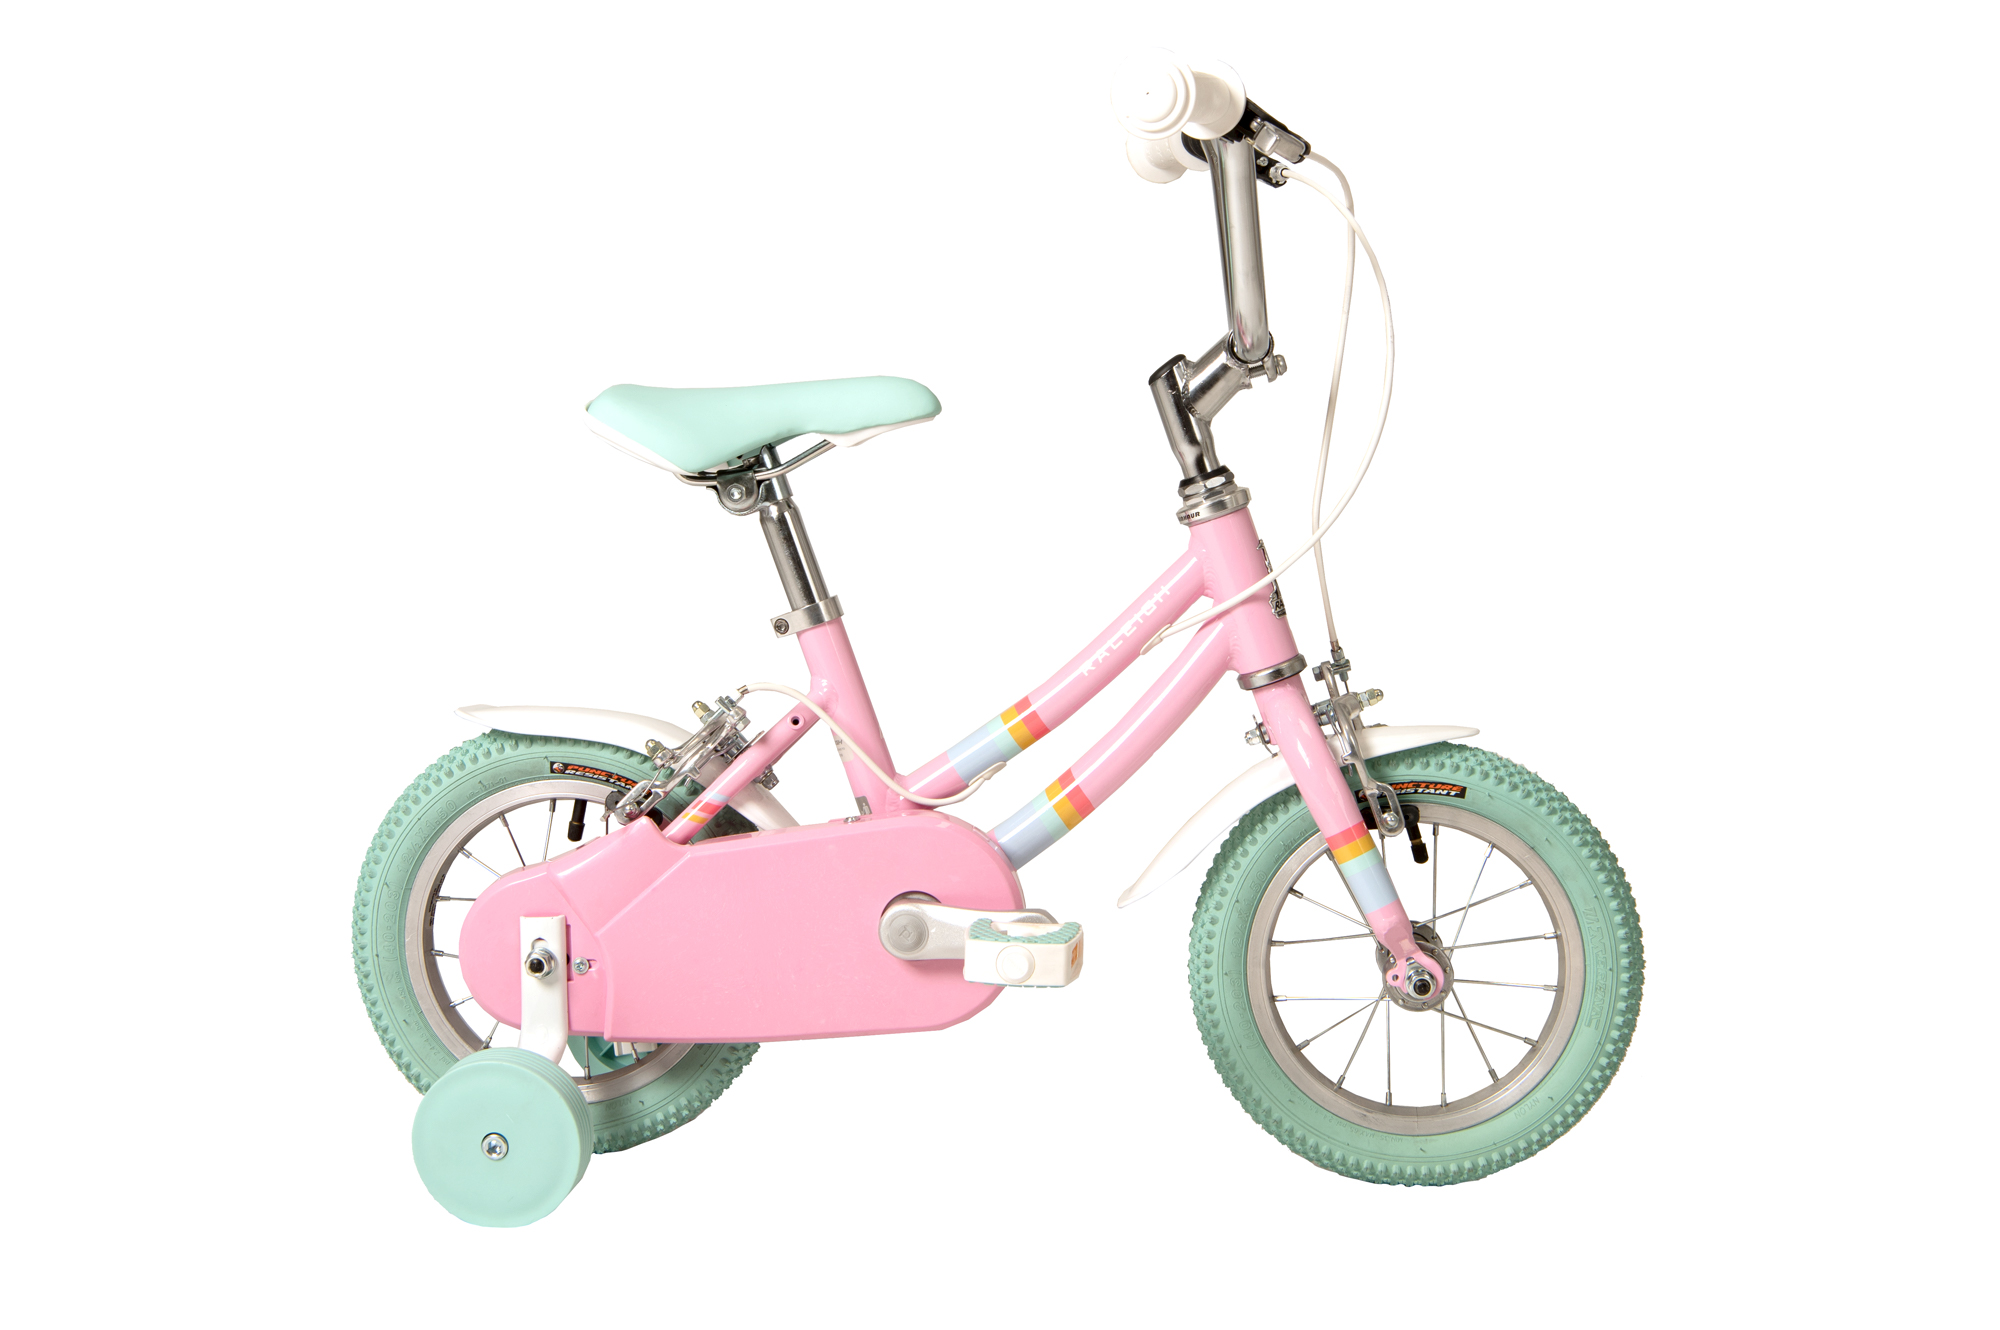 Raleigh Pop 12 inch kids bike for girls with stabilisers